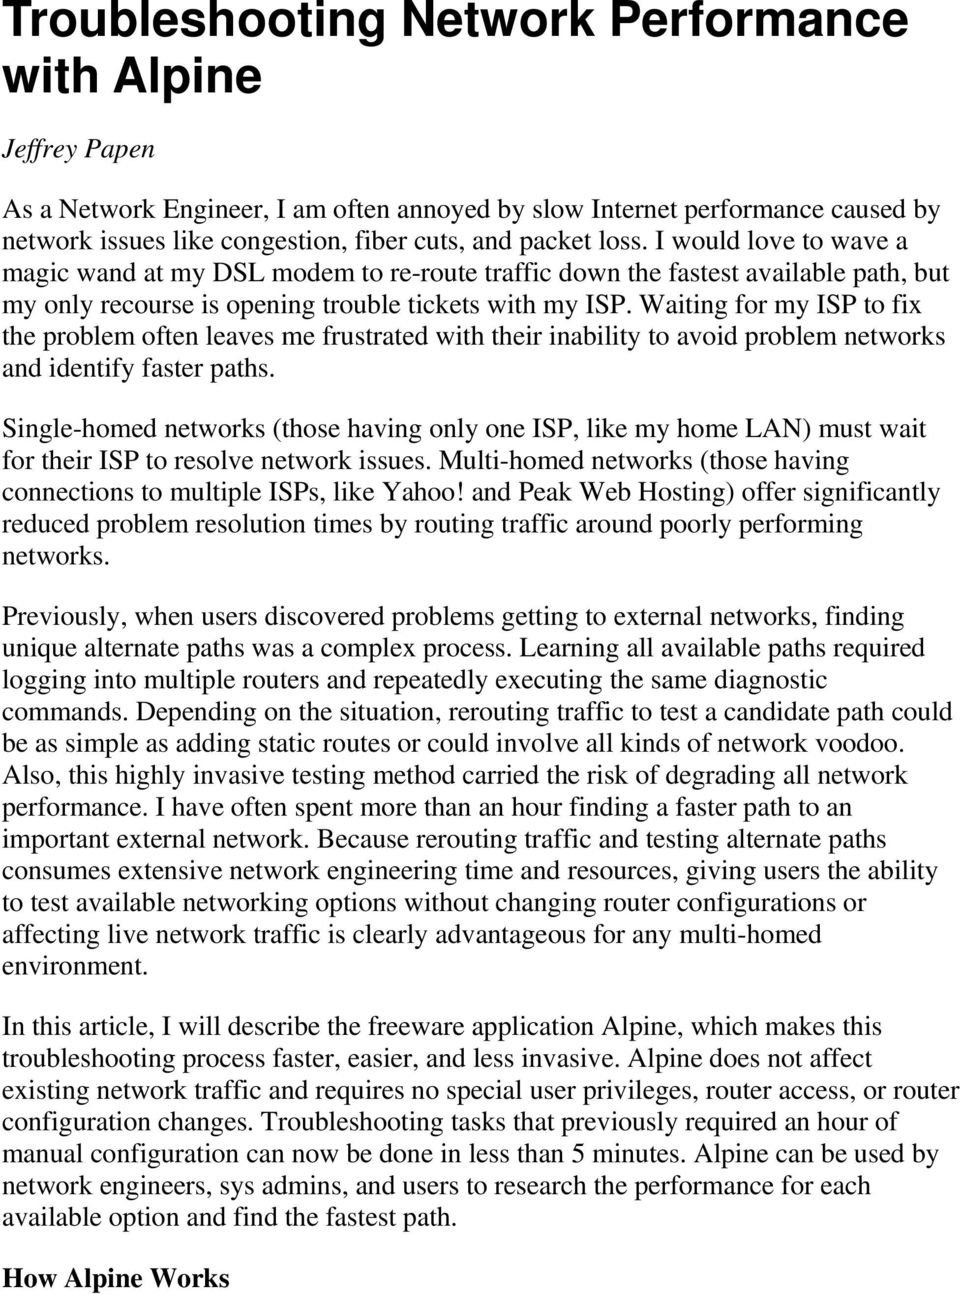 Troubleshooting Network Performance with Alpine - PDF